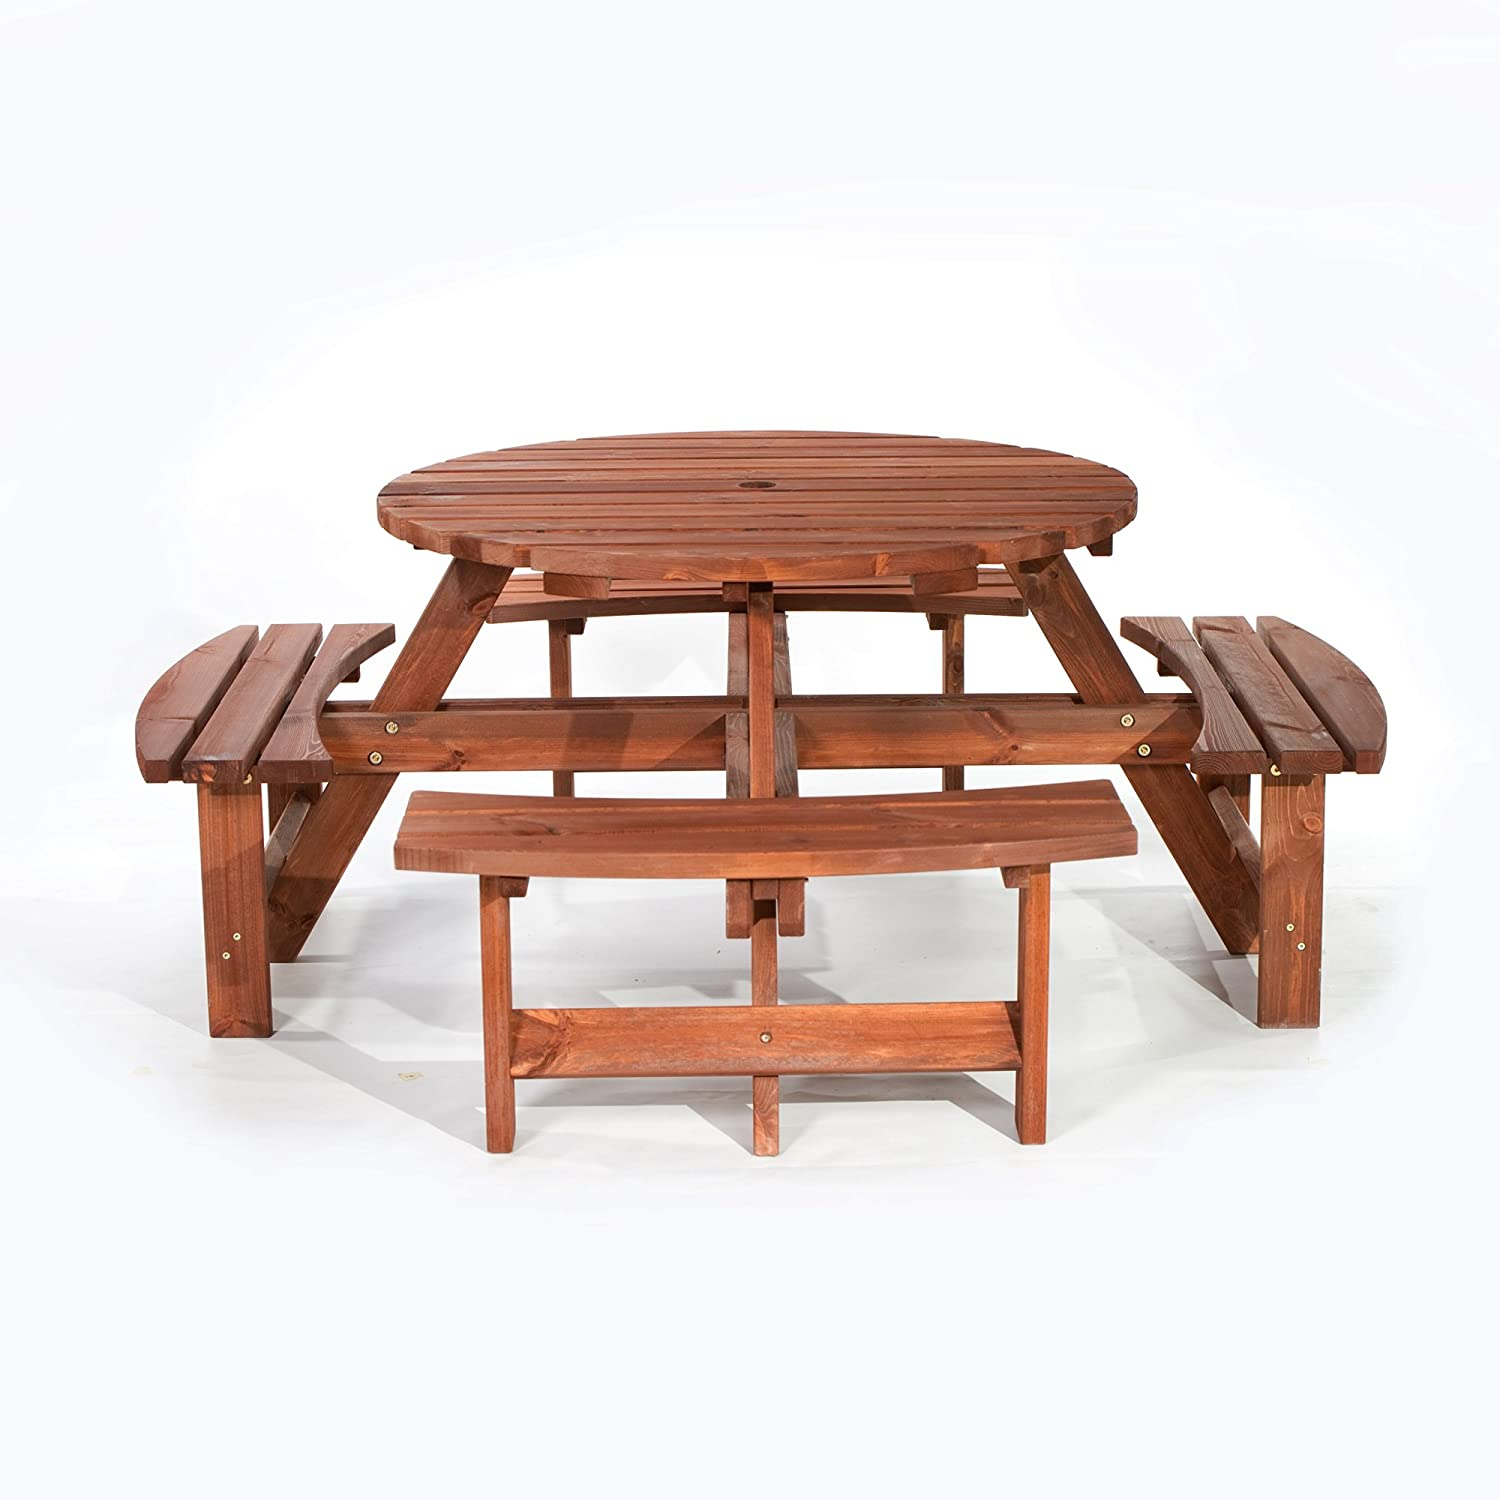 BrackenStyle Brown Picnic Pub Bench 8 Seater Round Wooden Garden Patio Table Thick Timbers Dip Treated